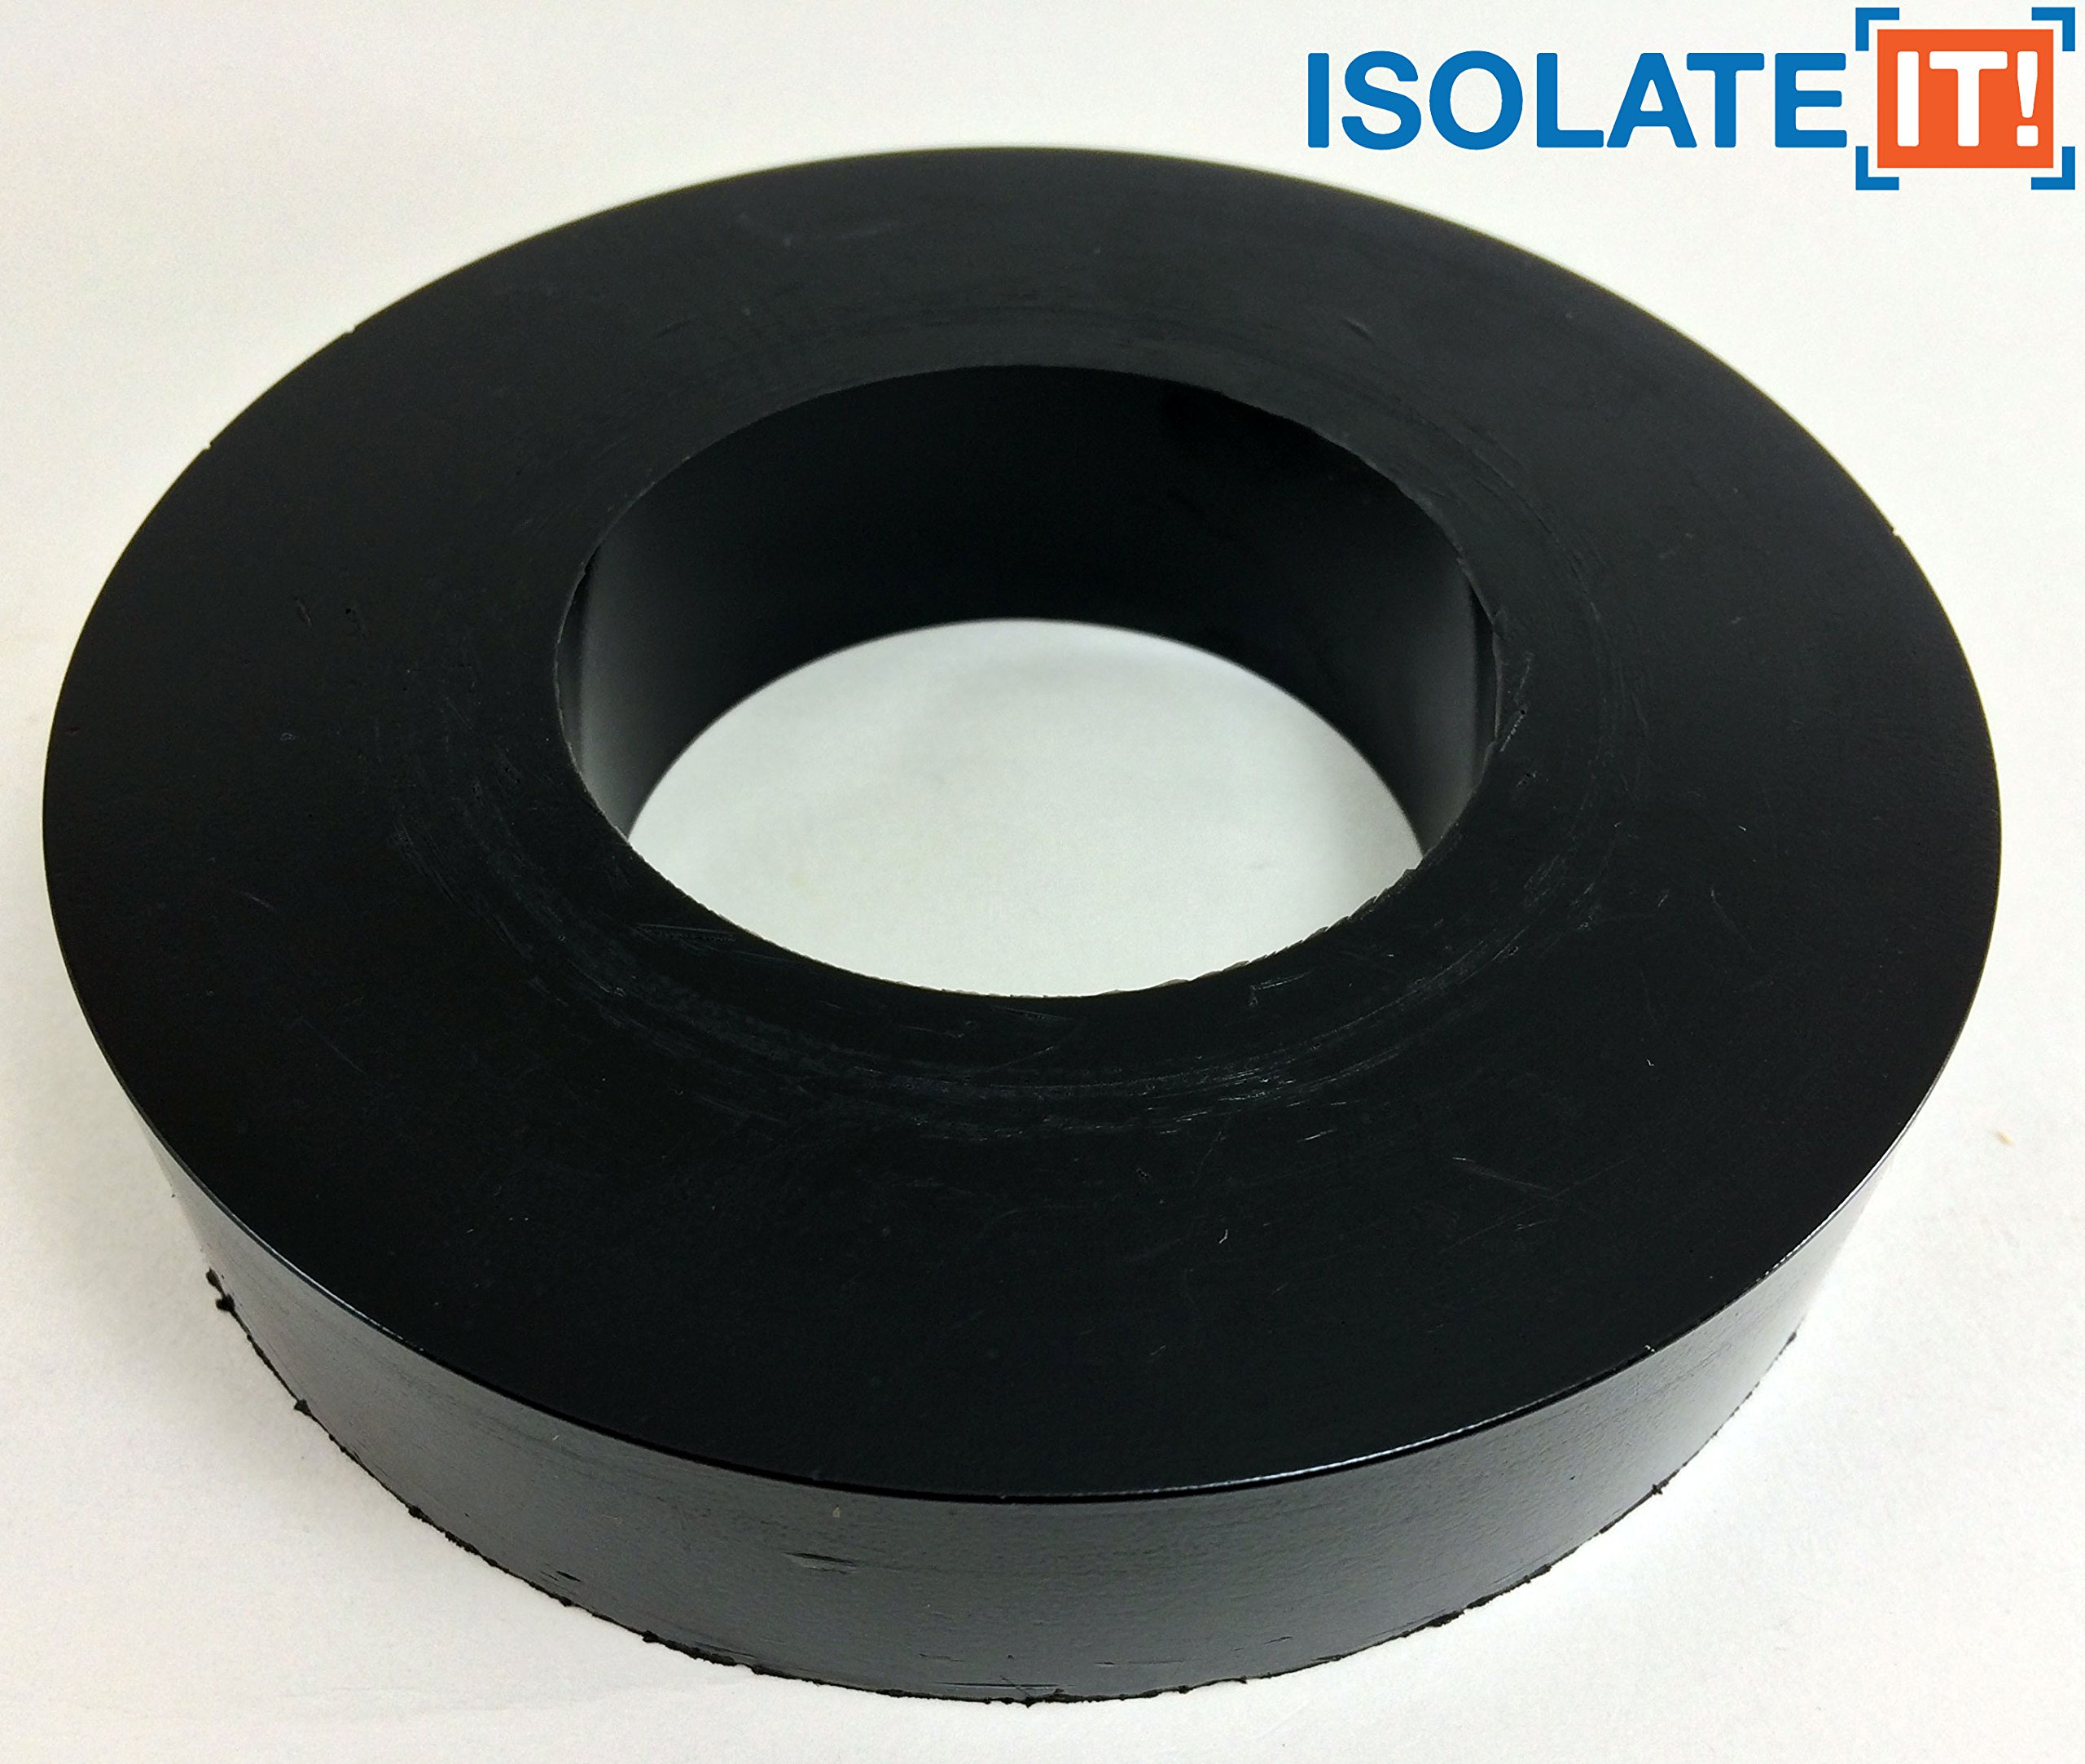 Isolate It: Sorbothane Large Vibration Isolation Washer 5'' OD x 2.5'' ID x 1'' Thick 70 Duro - 4 Pack by Isolate It!